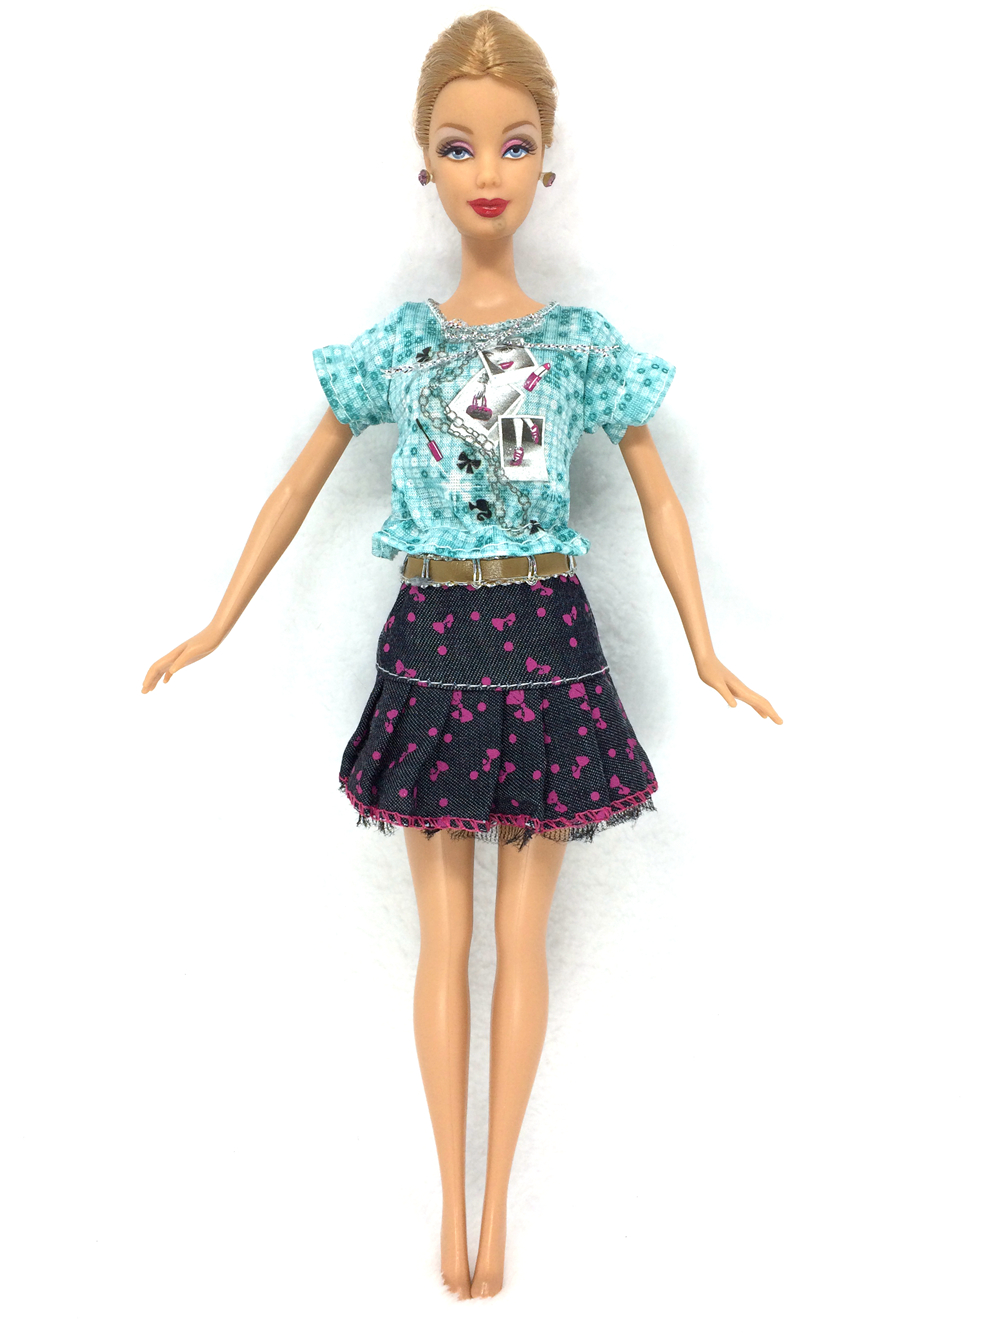 NK One Set Doll Garments  Style Outfit  Denims Skirt Cute Printing Clothesing For Barbie Doll Lady Favorite Reward Occasion Robe 08A